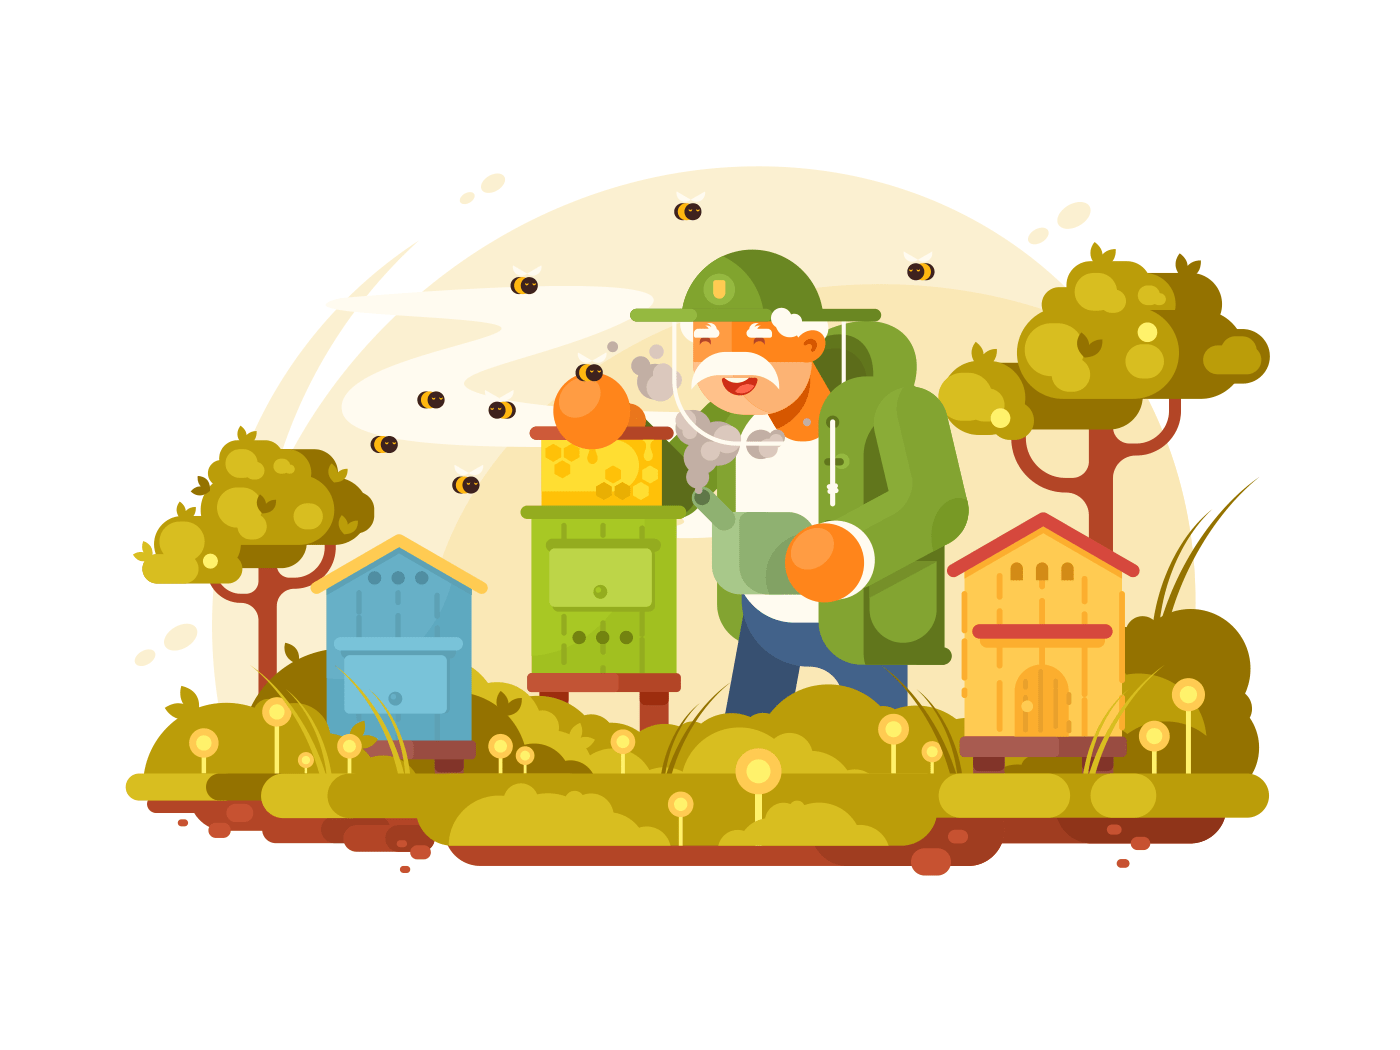 Beekeeper elderly man illustration